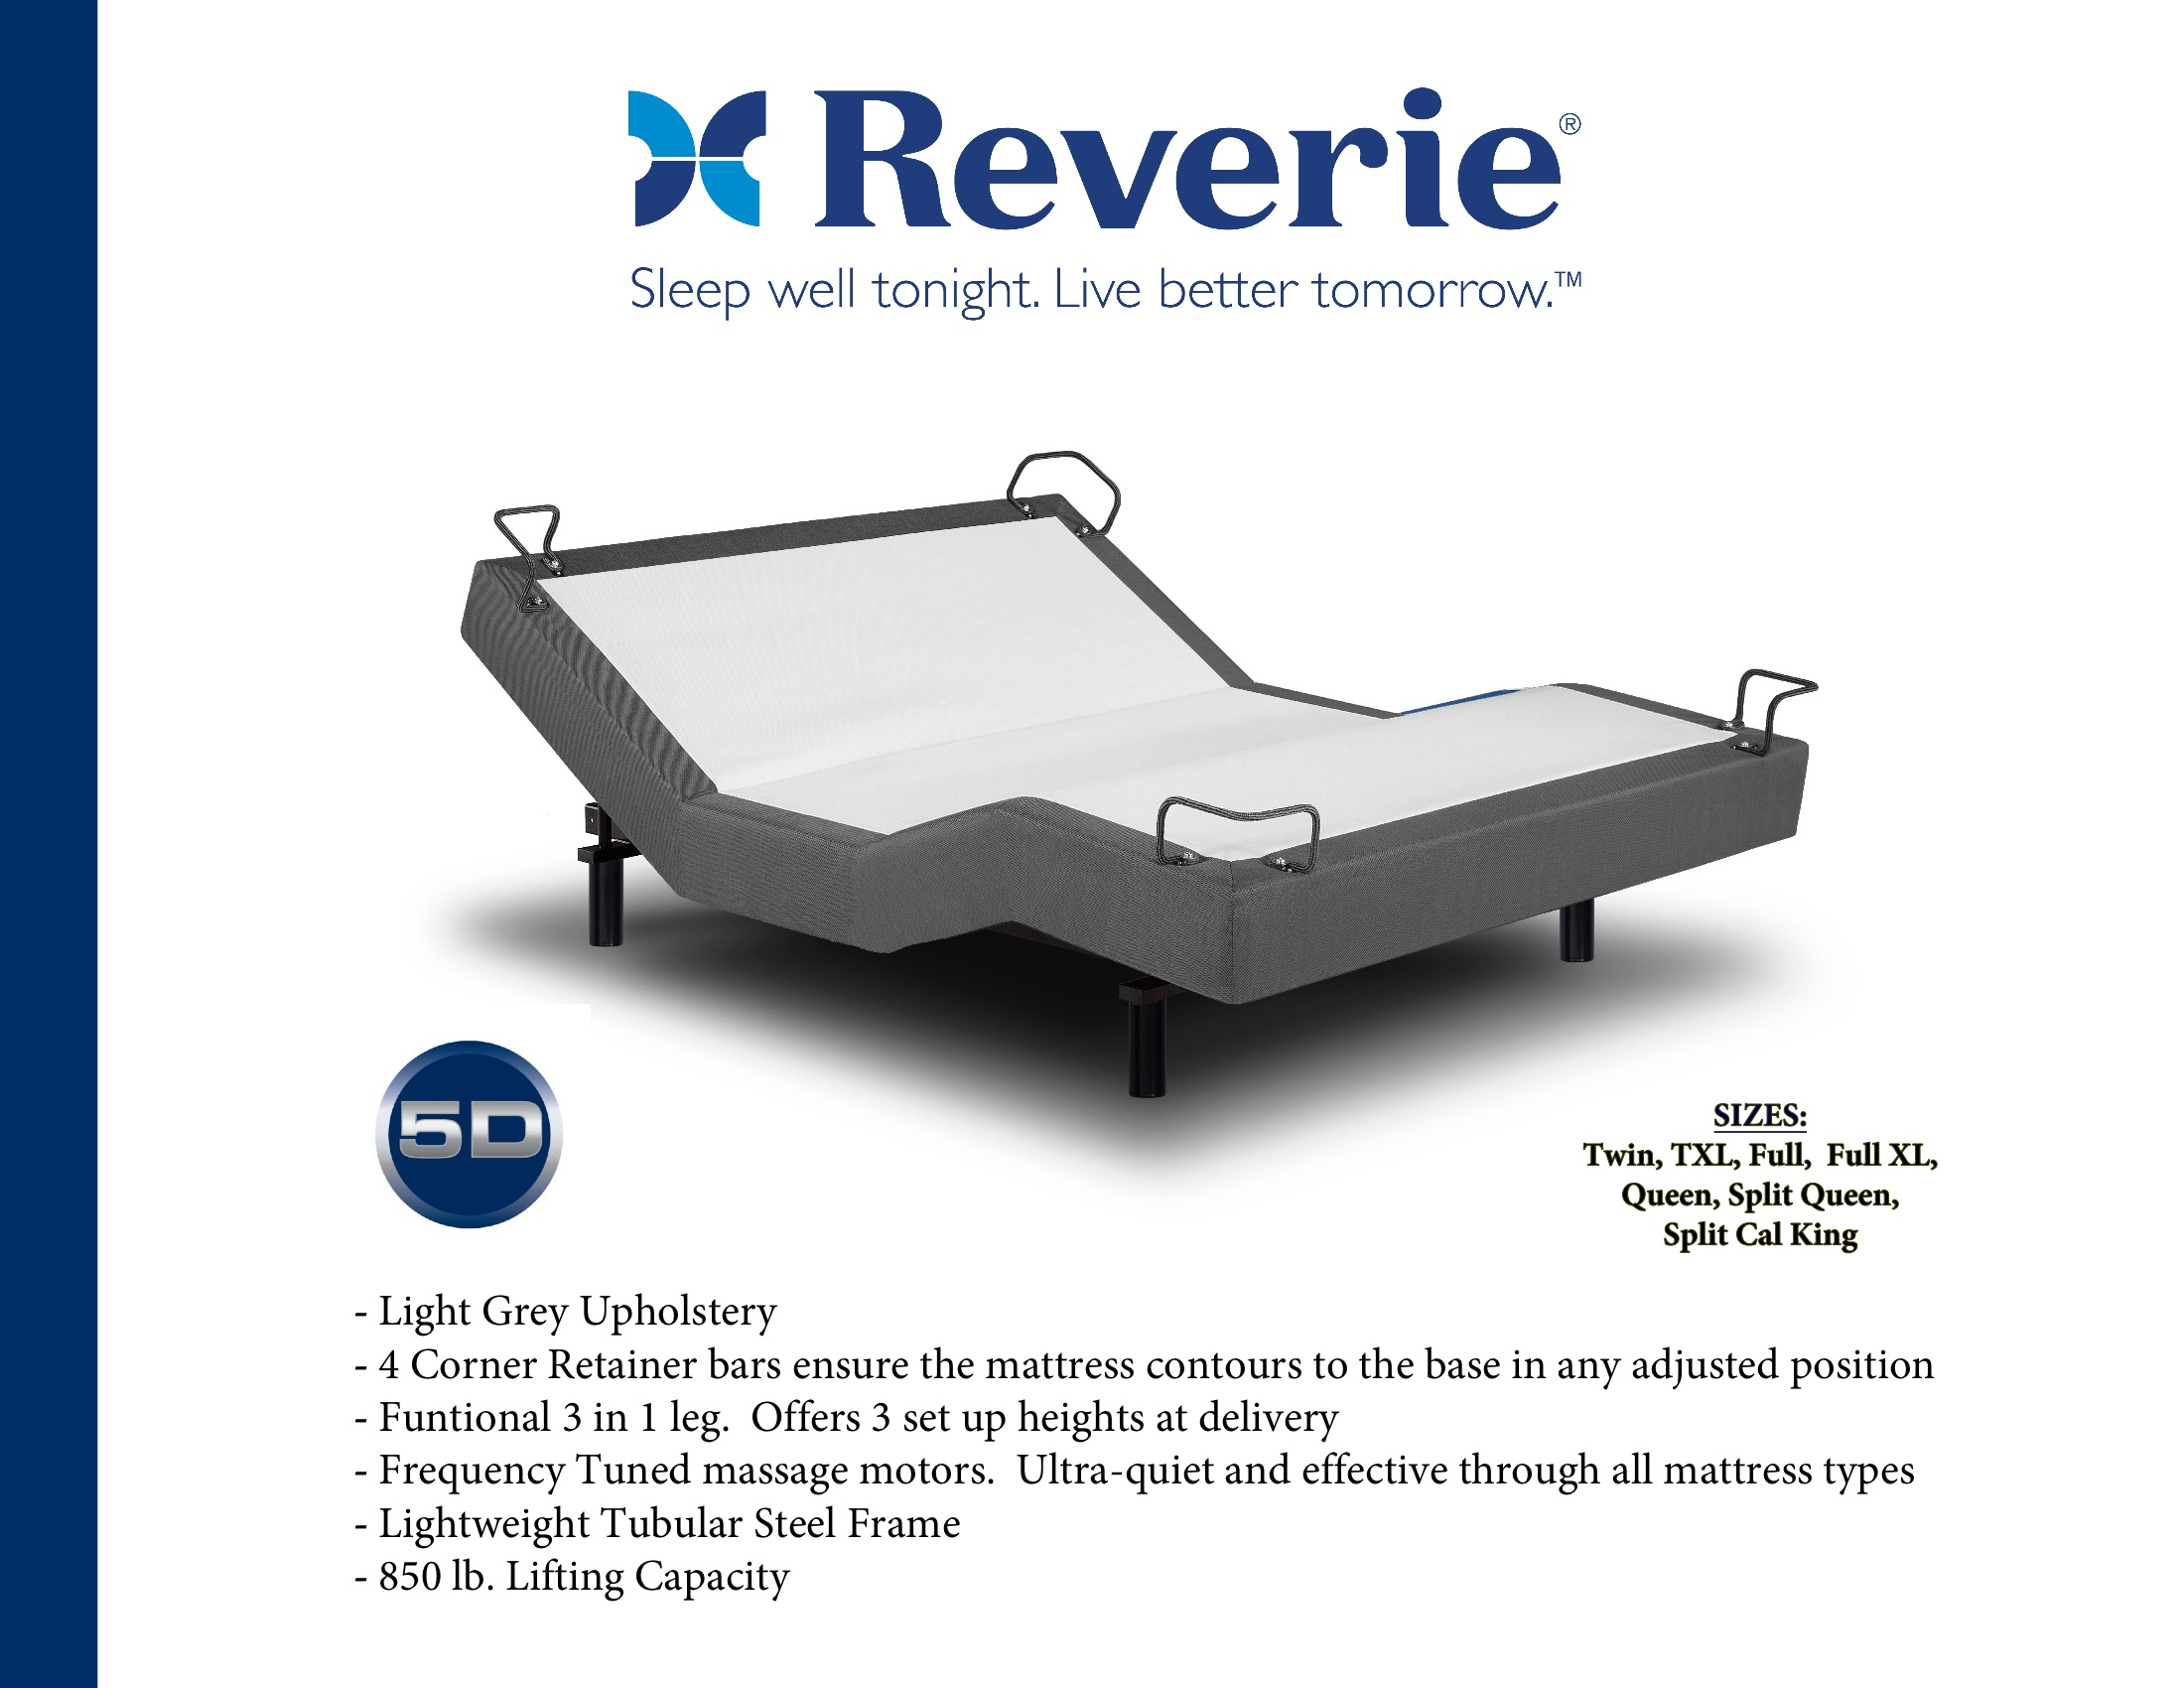 Reverie 5d Adjustable Bed With Wireless Remote Massage